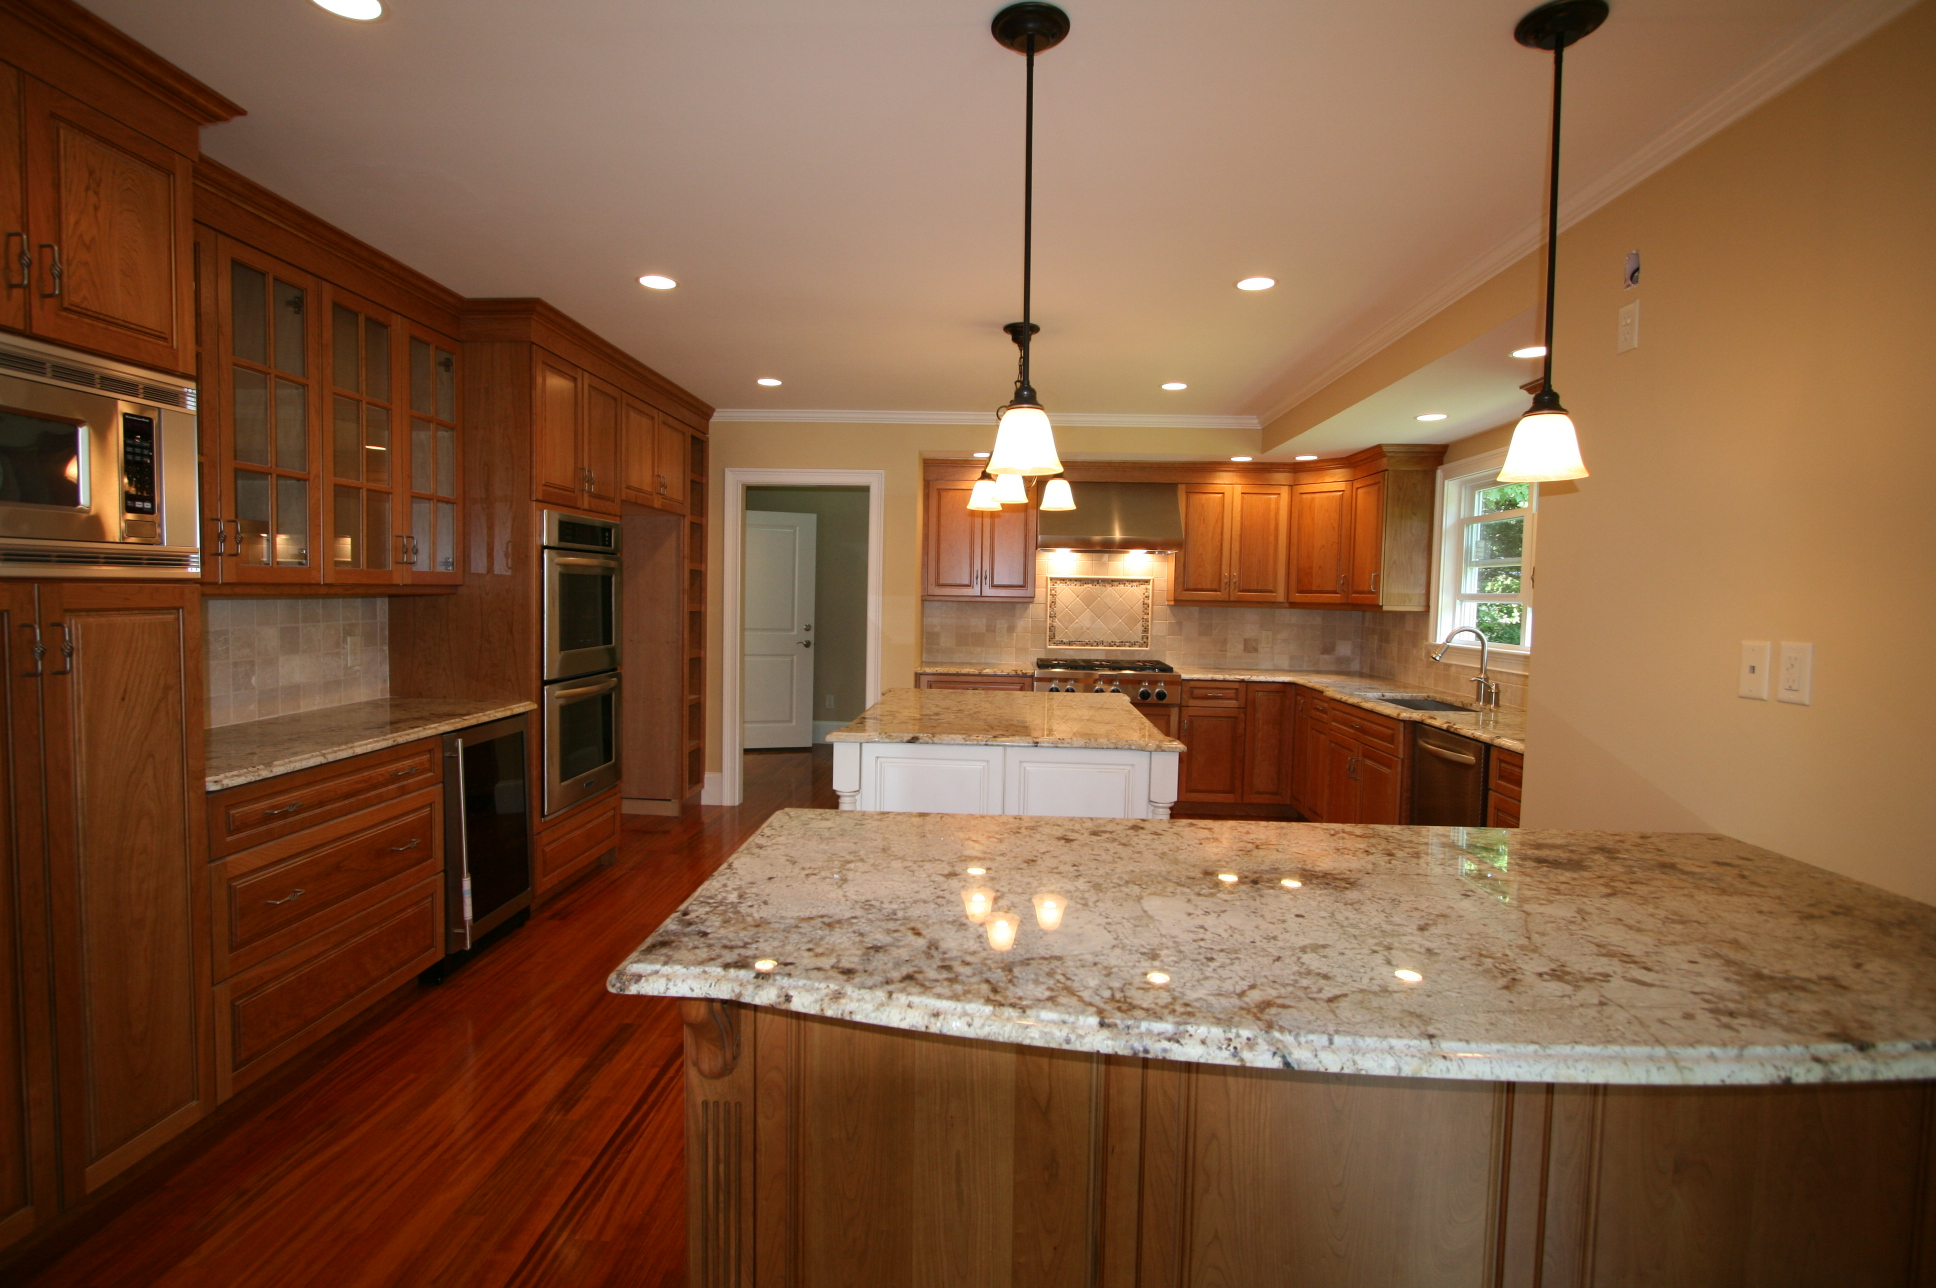 Check out the pics of new kitchens halliday construction for New kitchen renovation